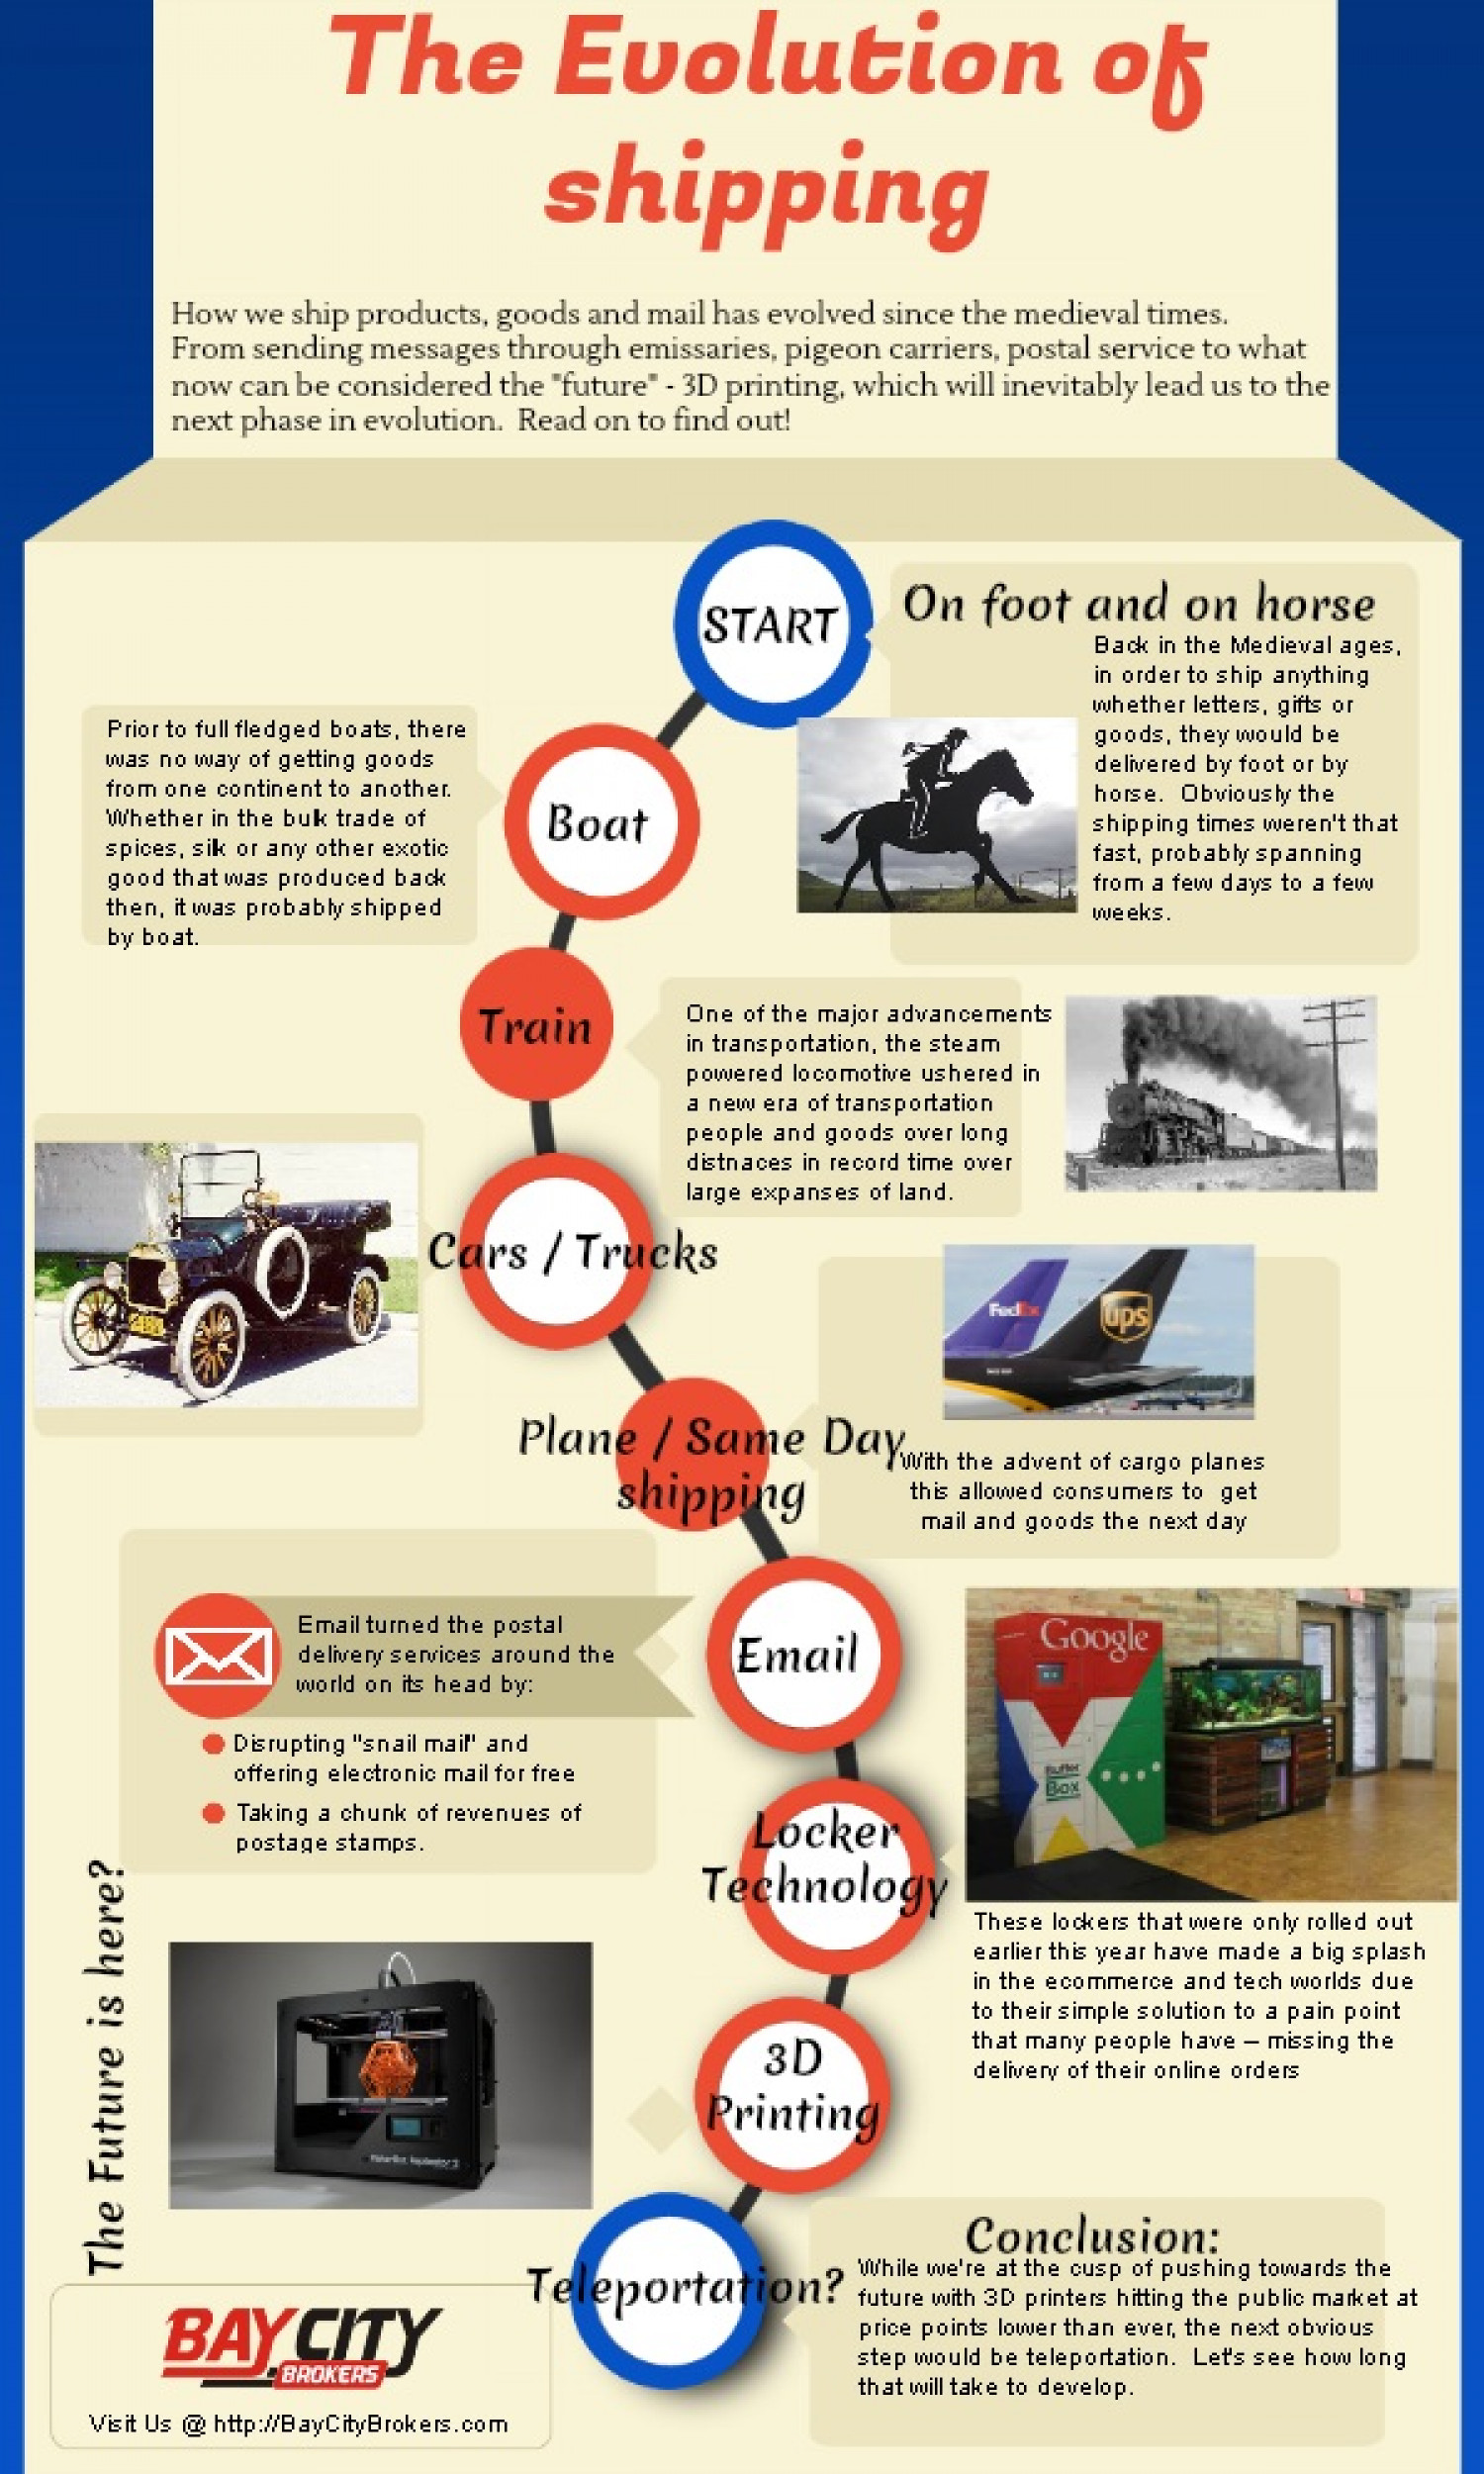 The Evolution of Shipping  Infographic